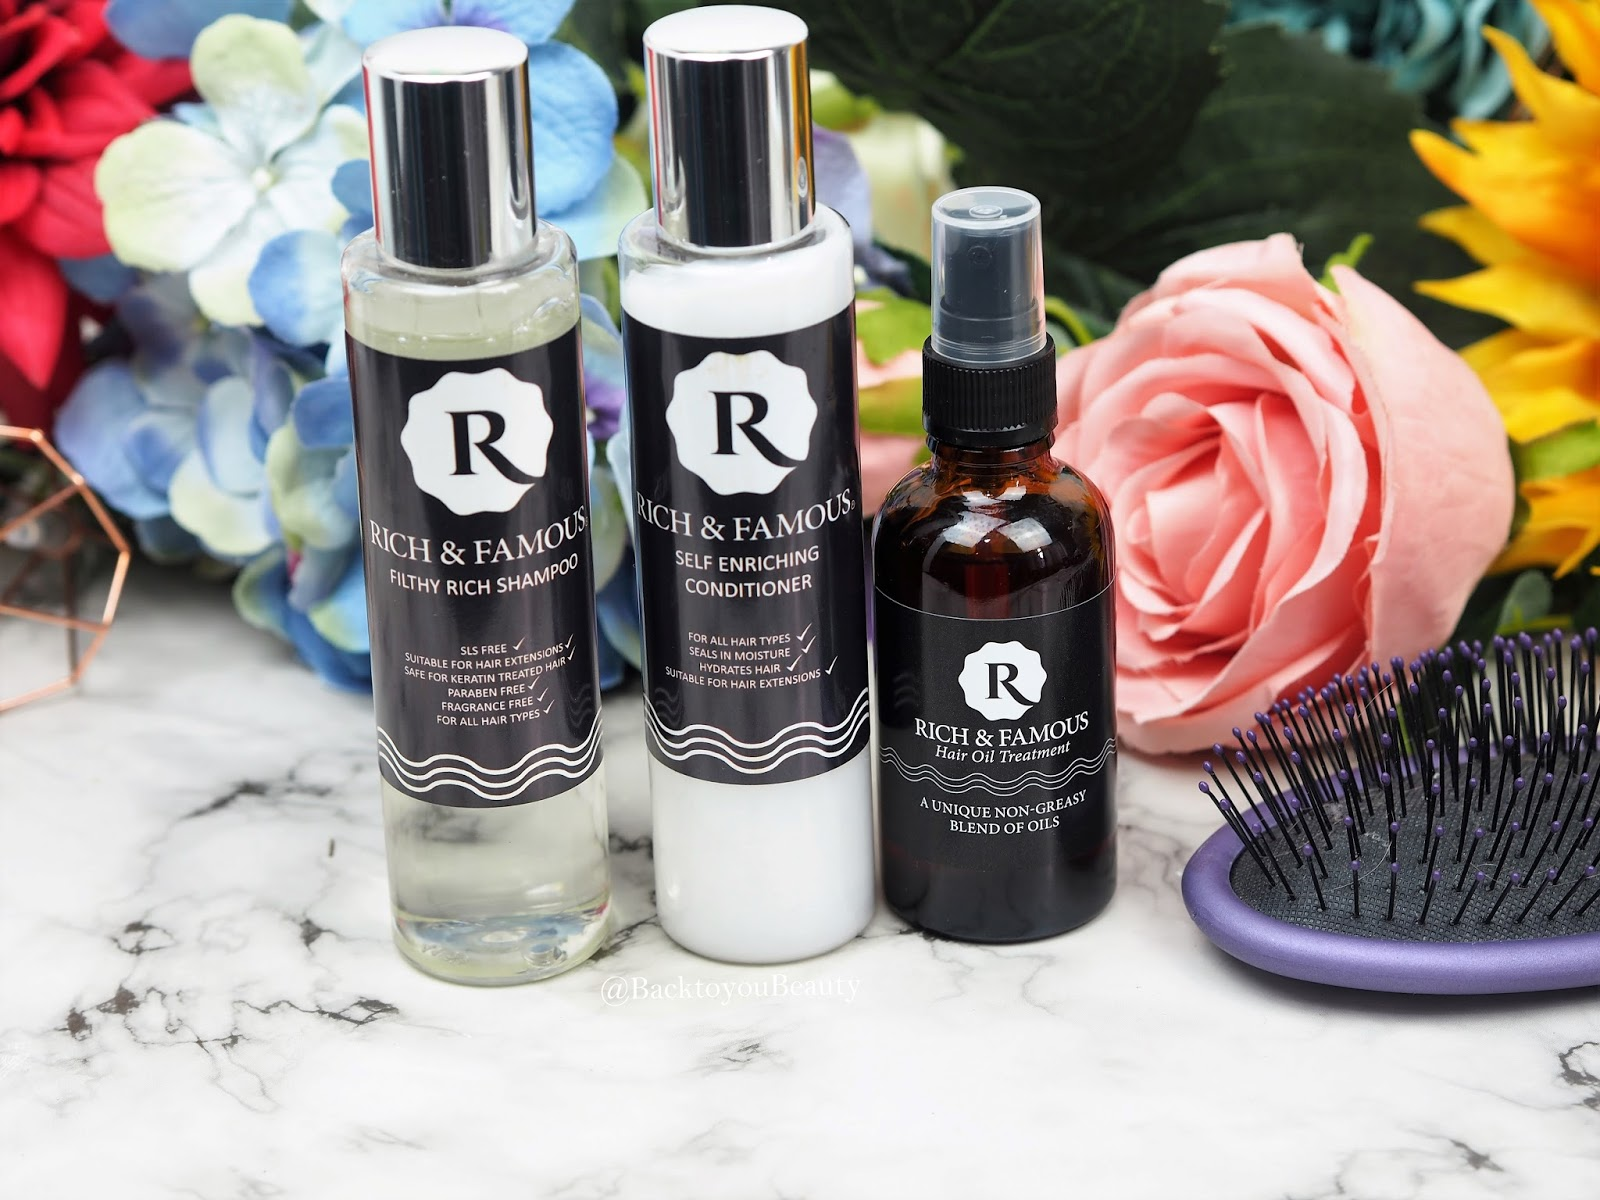 Rich & Famous Haircare